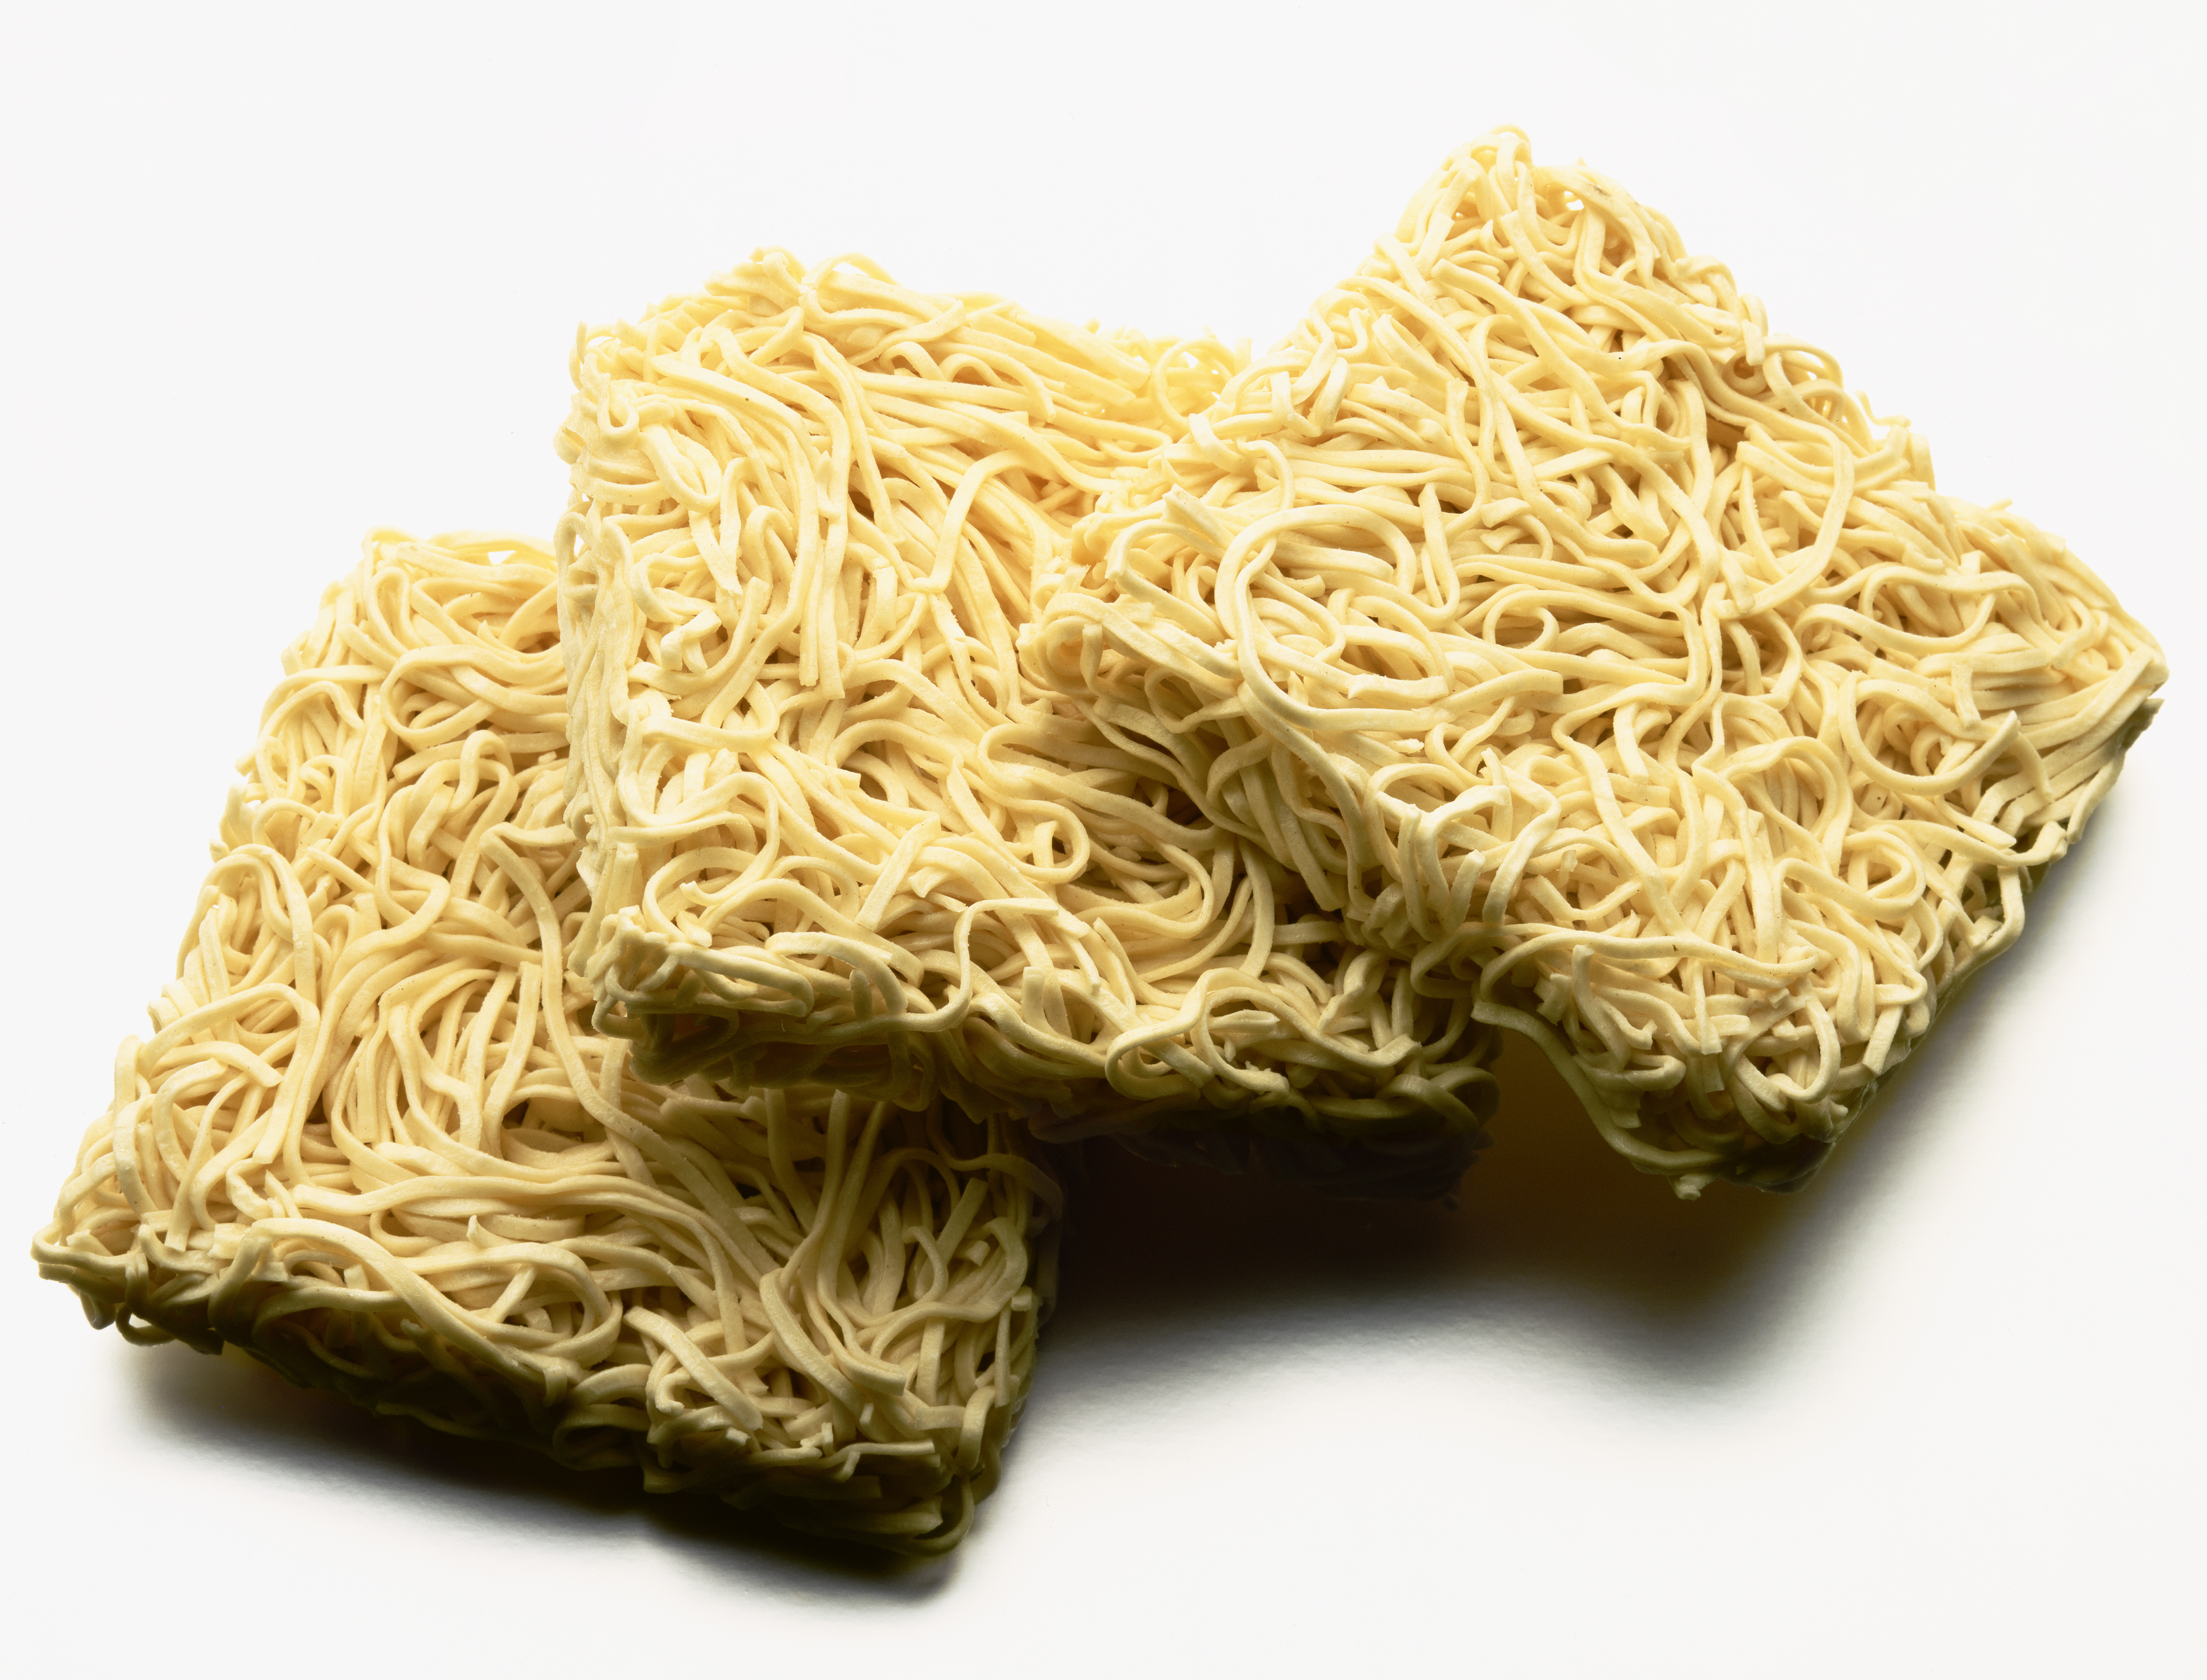 Ramen noodles are becoming an increasingly valuable commodity in U.S. prisons (file photo)